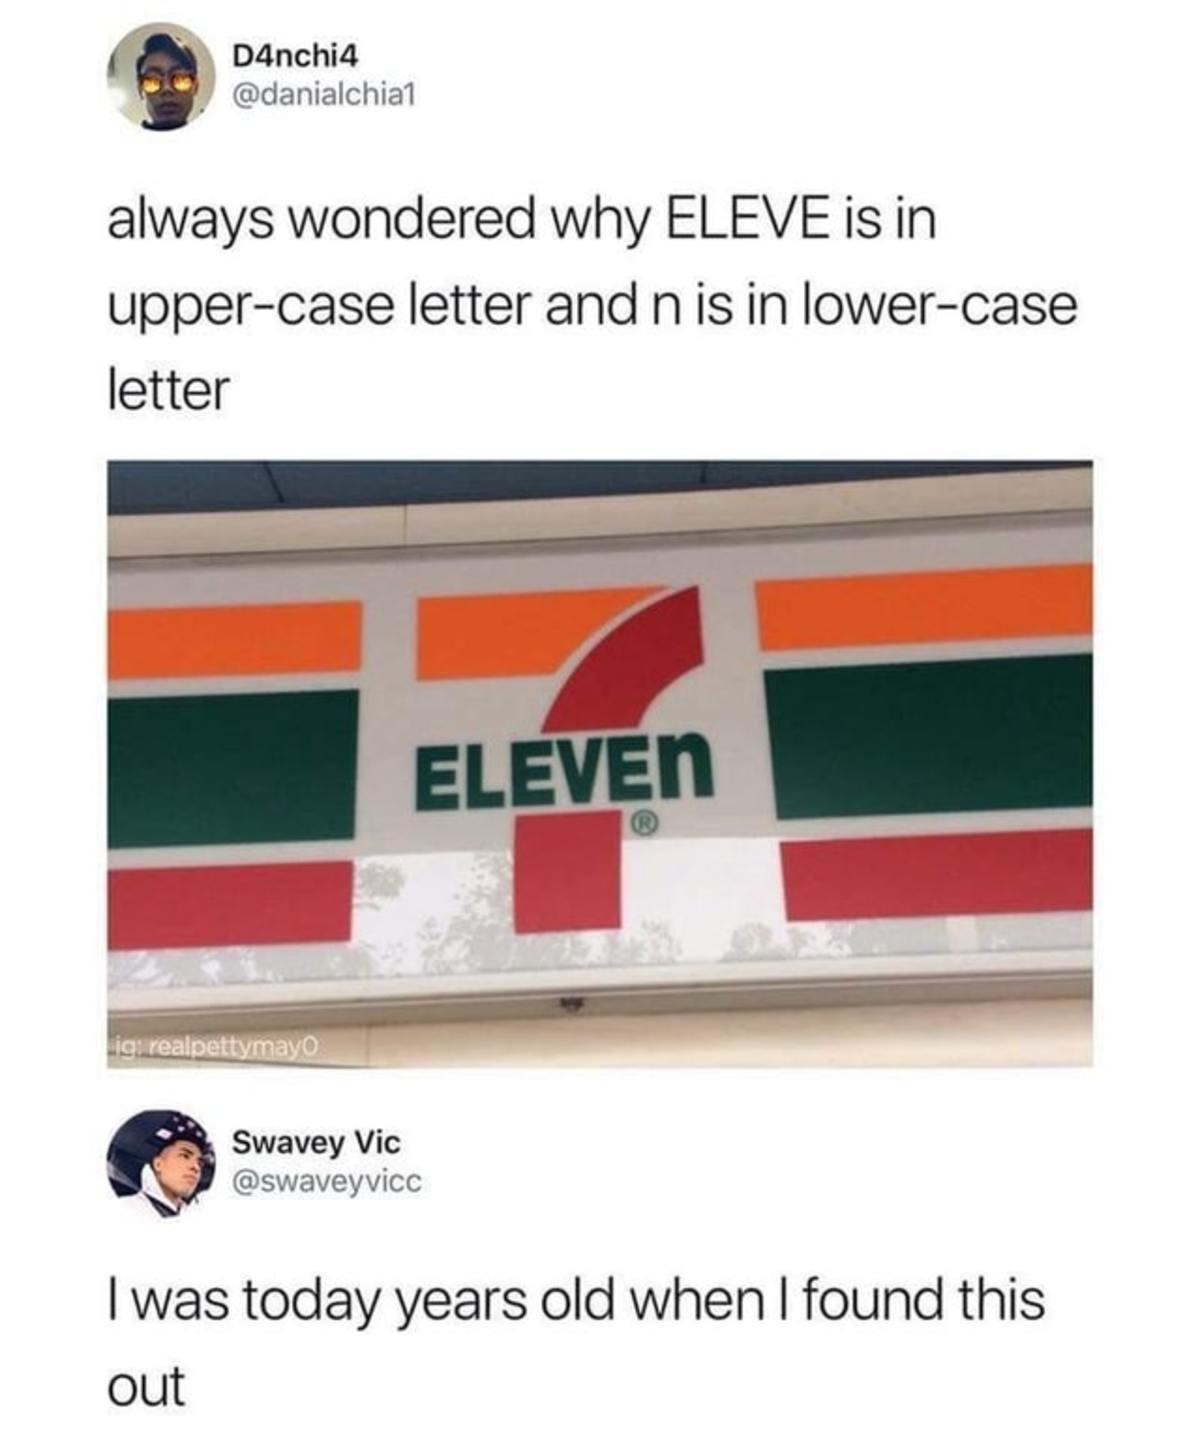 7 ELEVEn. . always wondered why ELEVE is in upperclass letter and tn is in lowerclass letter itll _ Slavey Vie I was today years old when I found this out. If I recall correctly wasn't it because they thought that it being all caps was incredibly aggressive and not welcoming? Something about the owners wife feeling